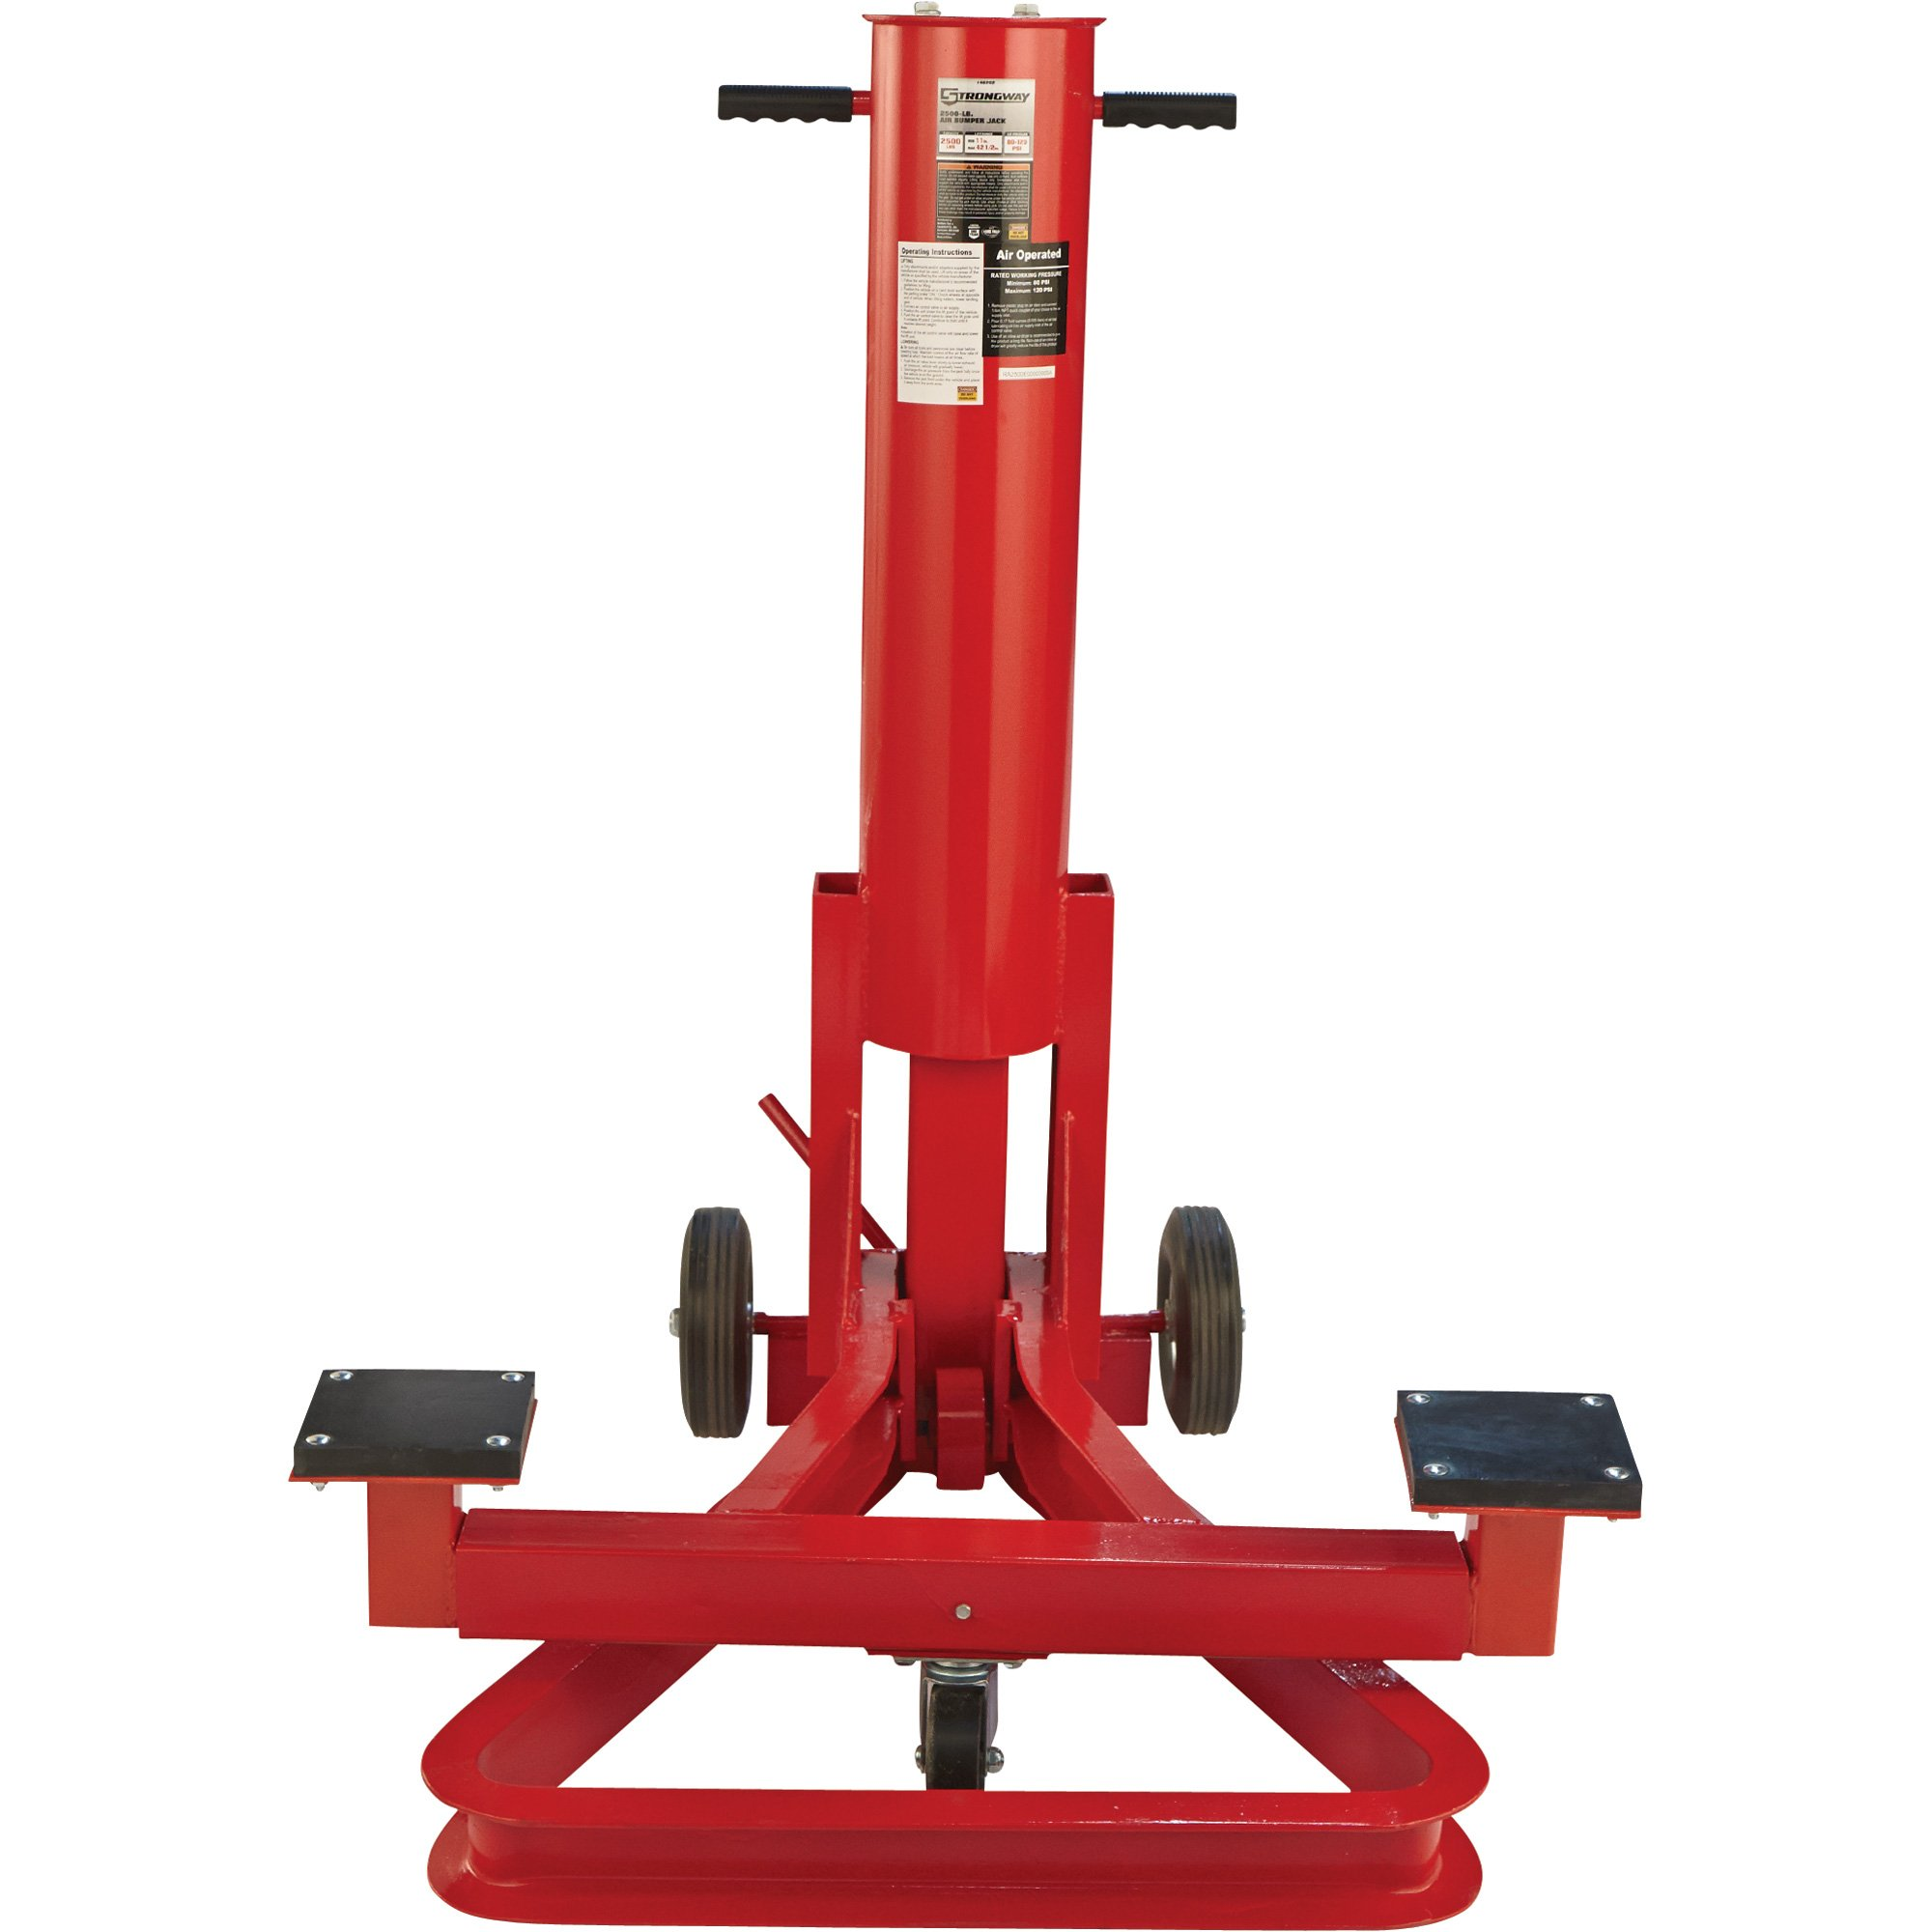 Strongway Air Bumper Jack - 1 1/4-Ton, 11in.-42 1/2in. Lift Range